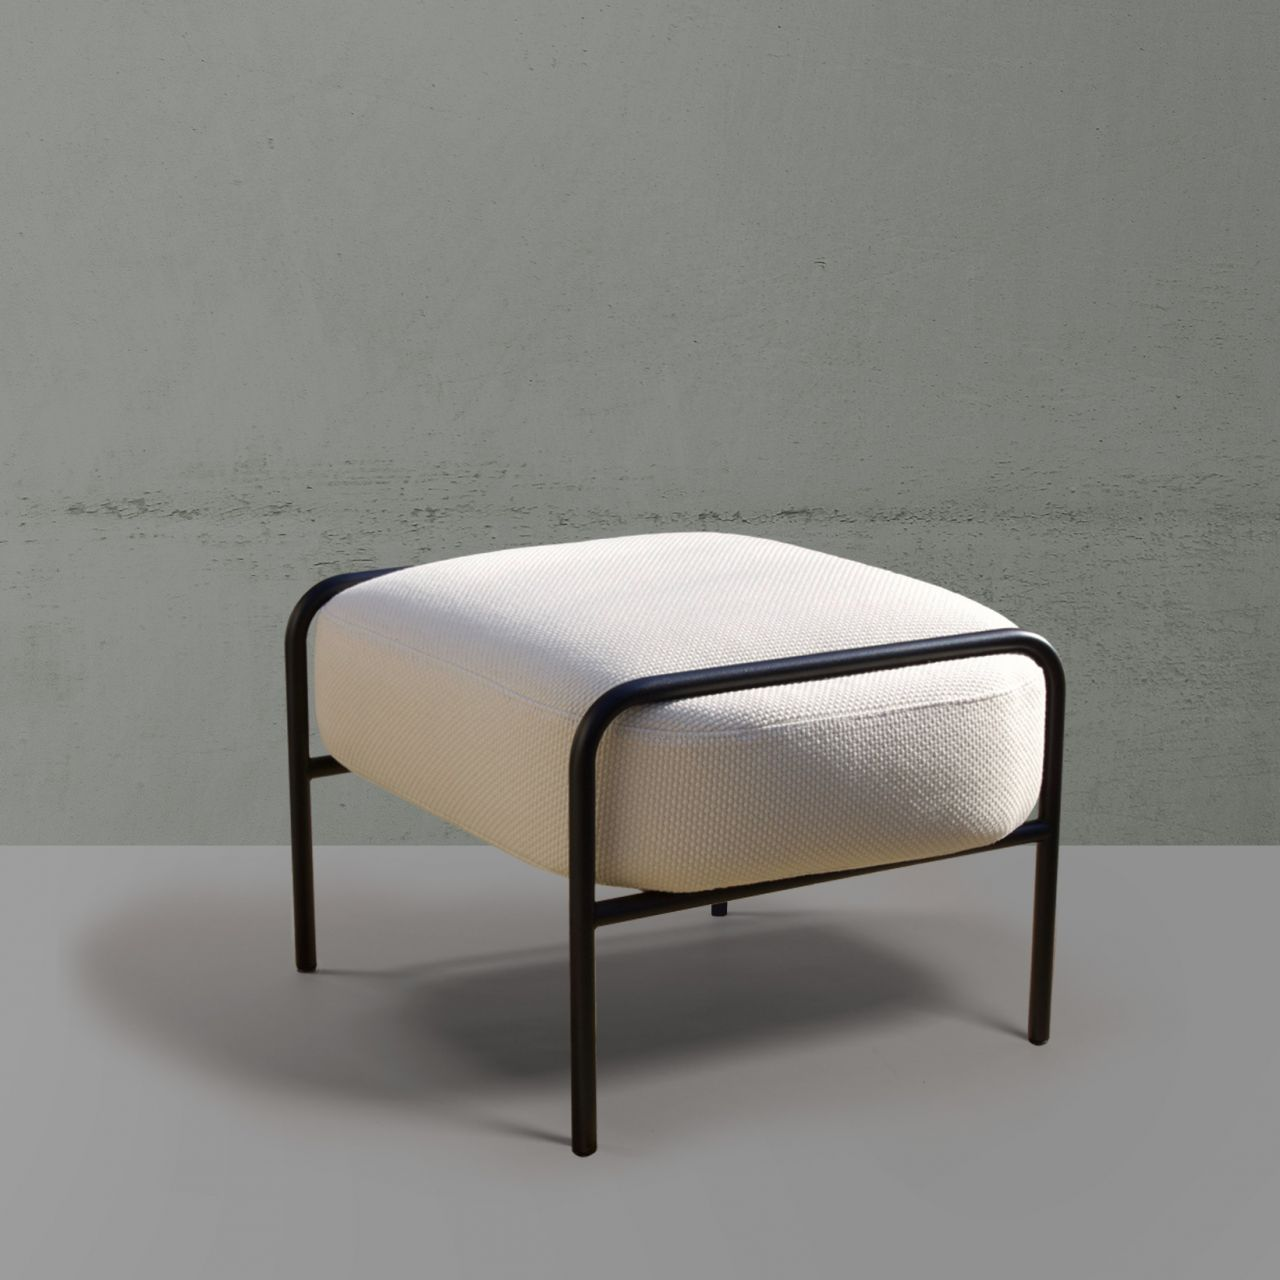 noma-editions-LAIME-Pouff-collection-01b